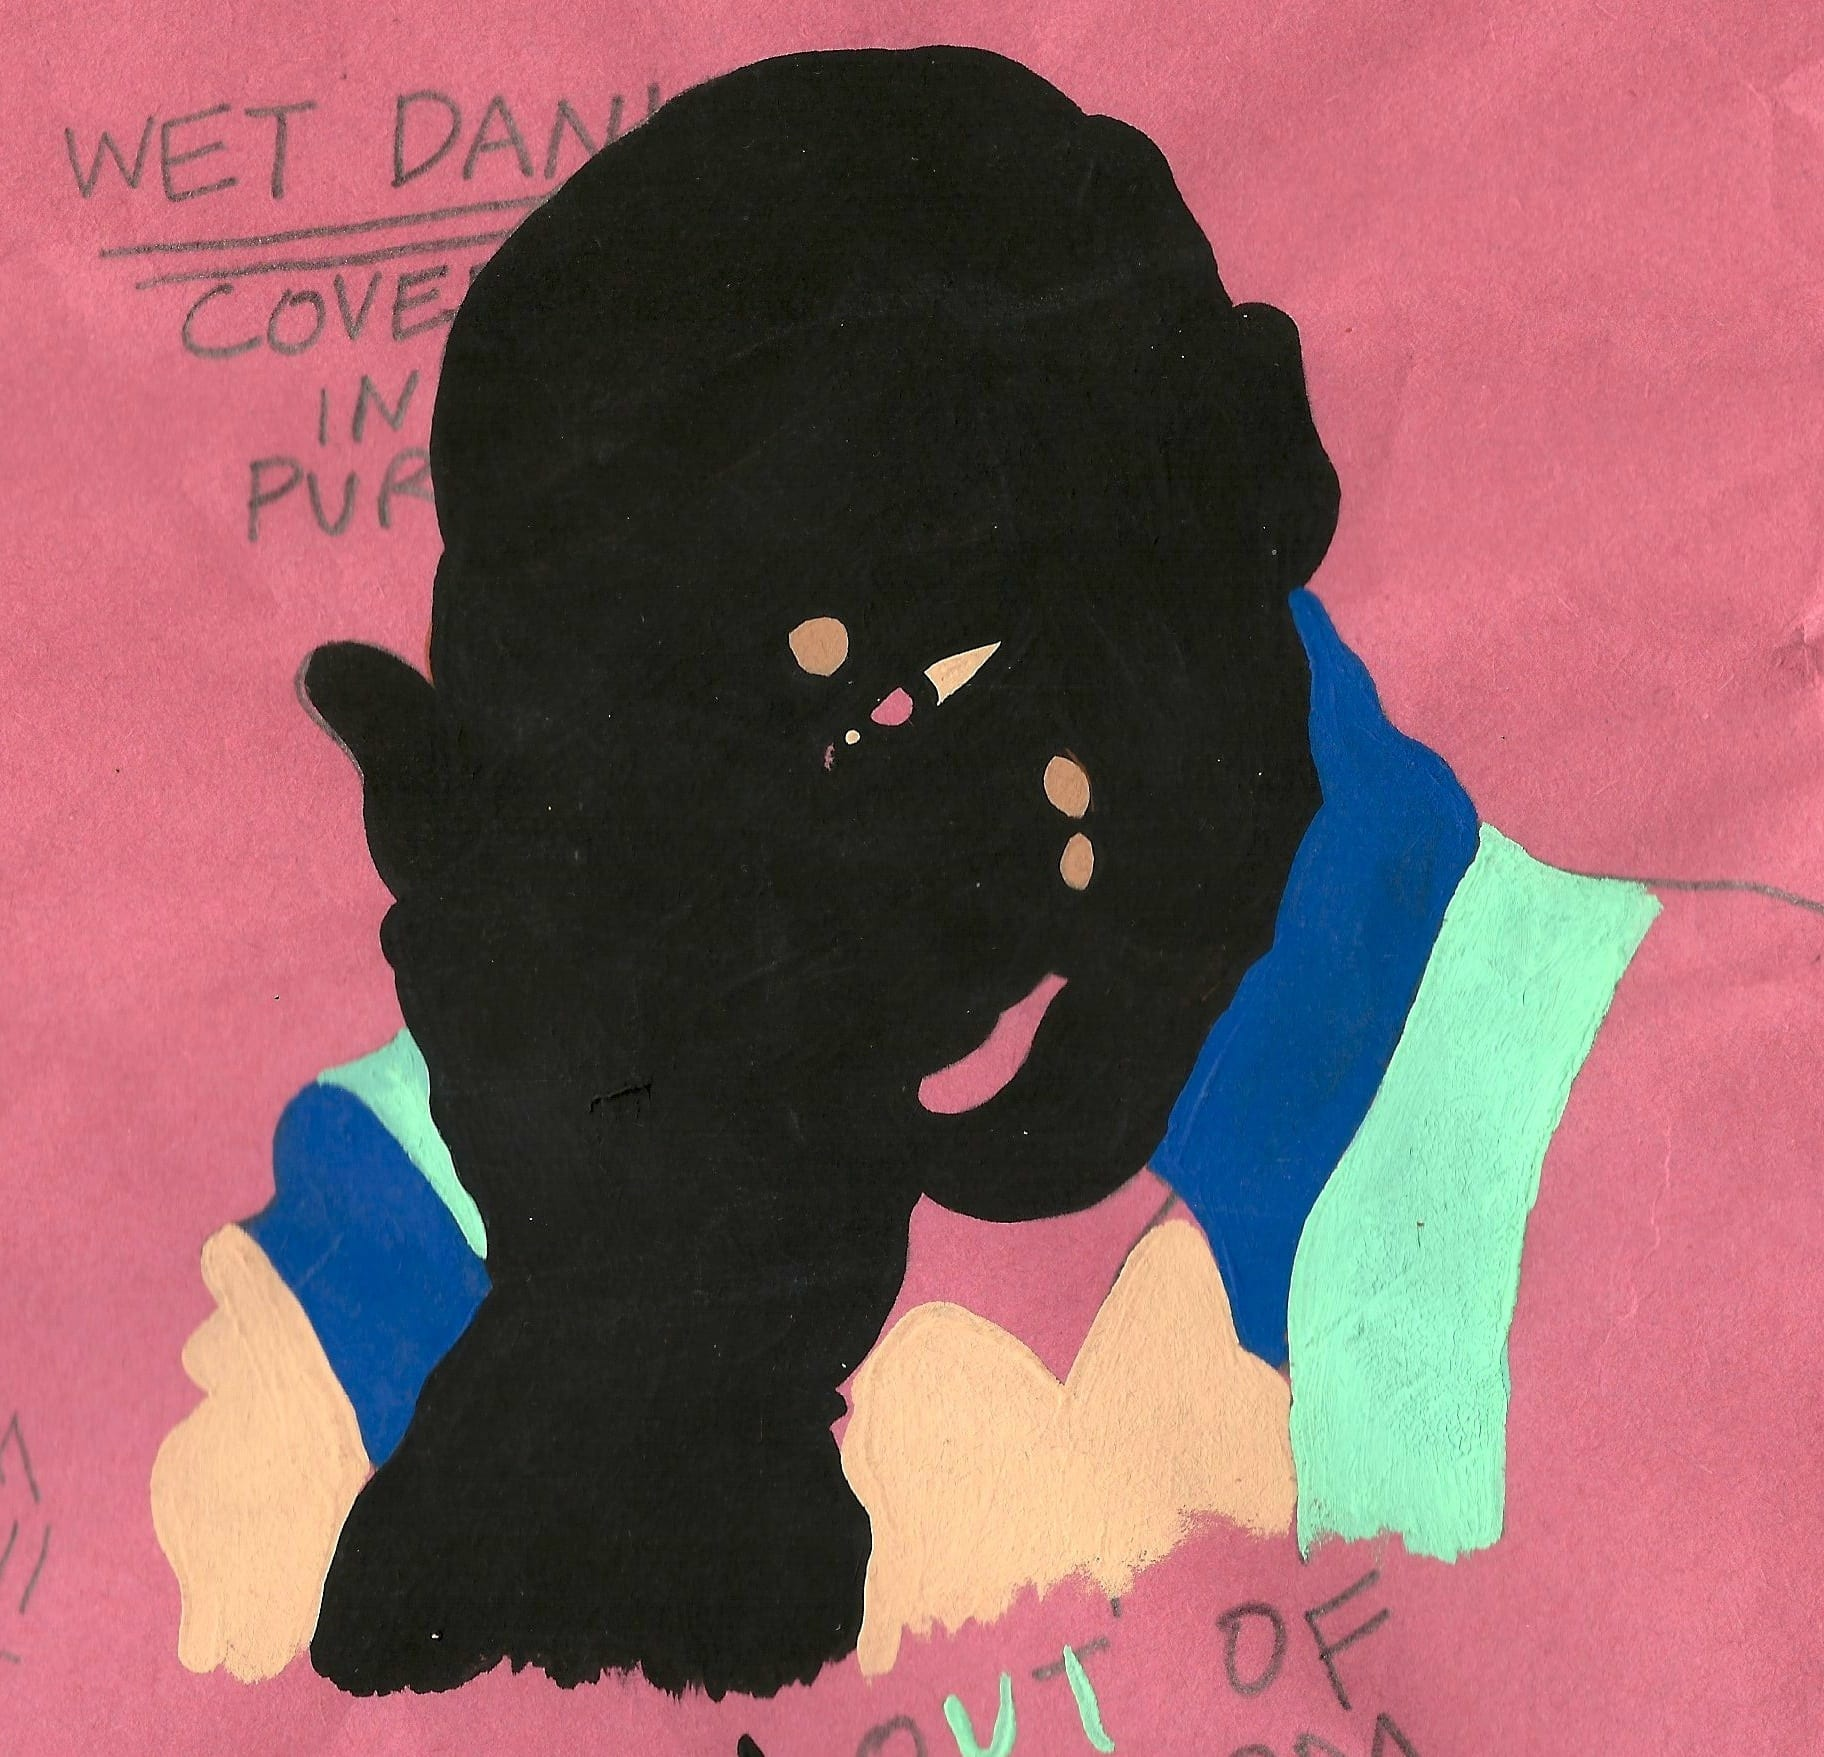 """""""Wet dank covered in purp 2015,"""" 2015. Collage. Image courtesy Harsh Riddims."""